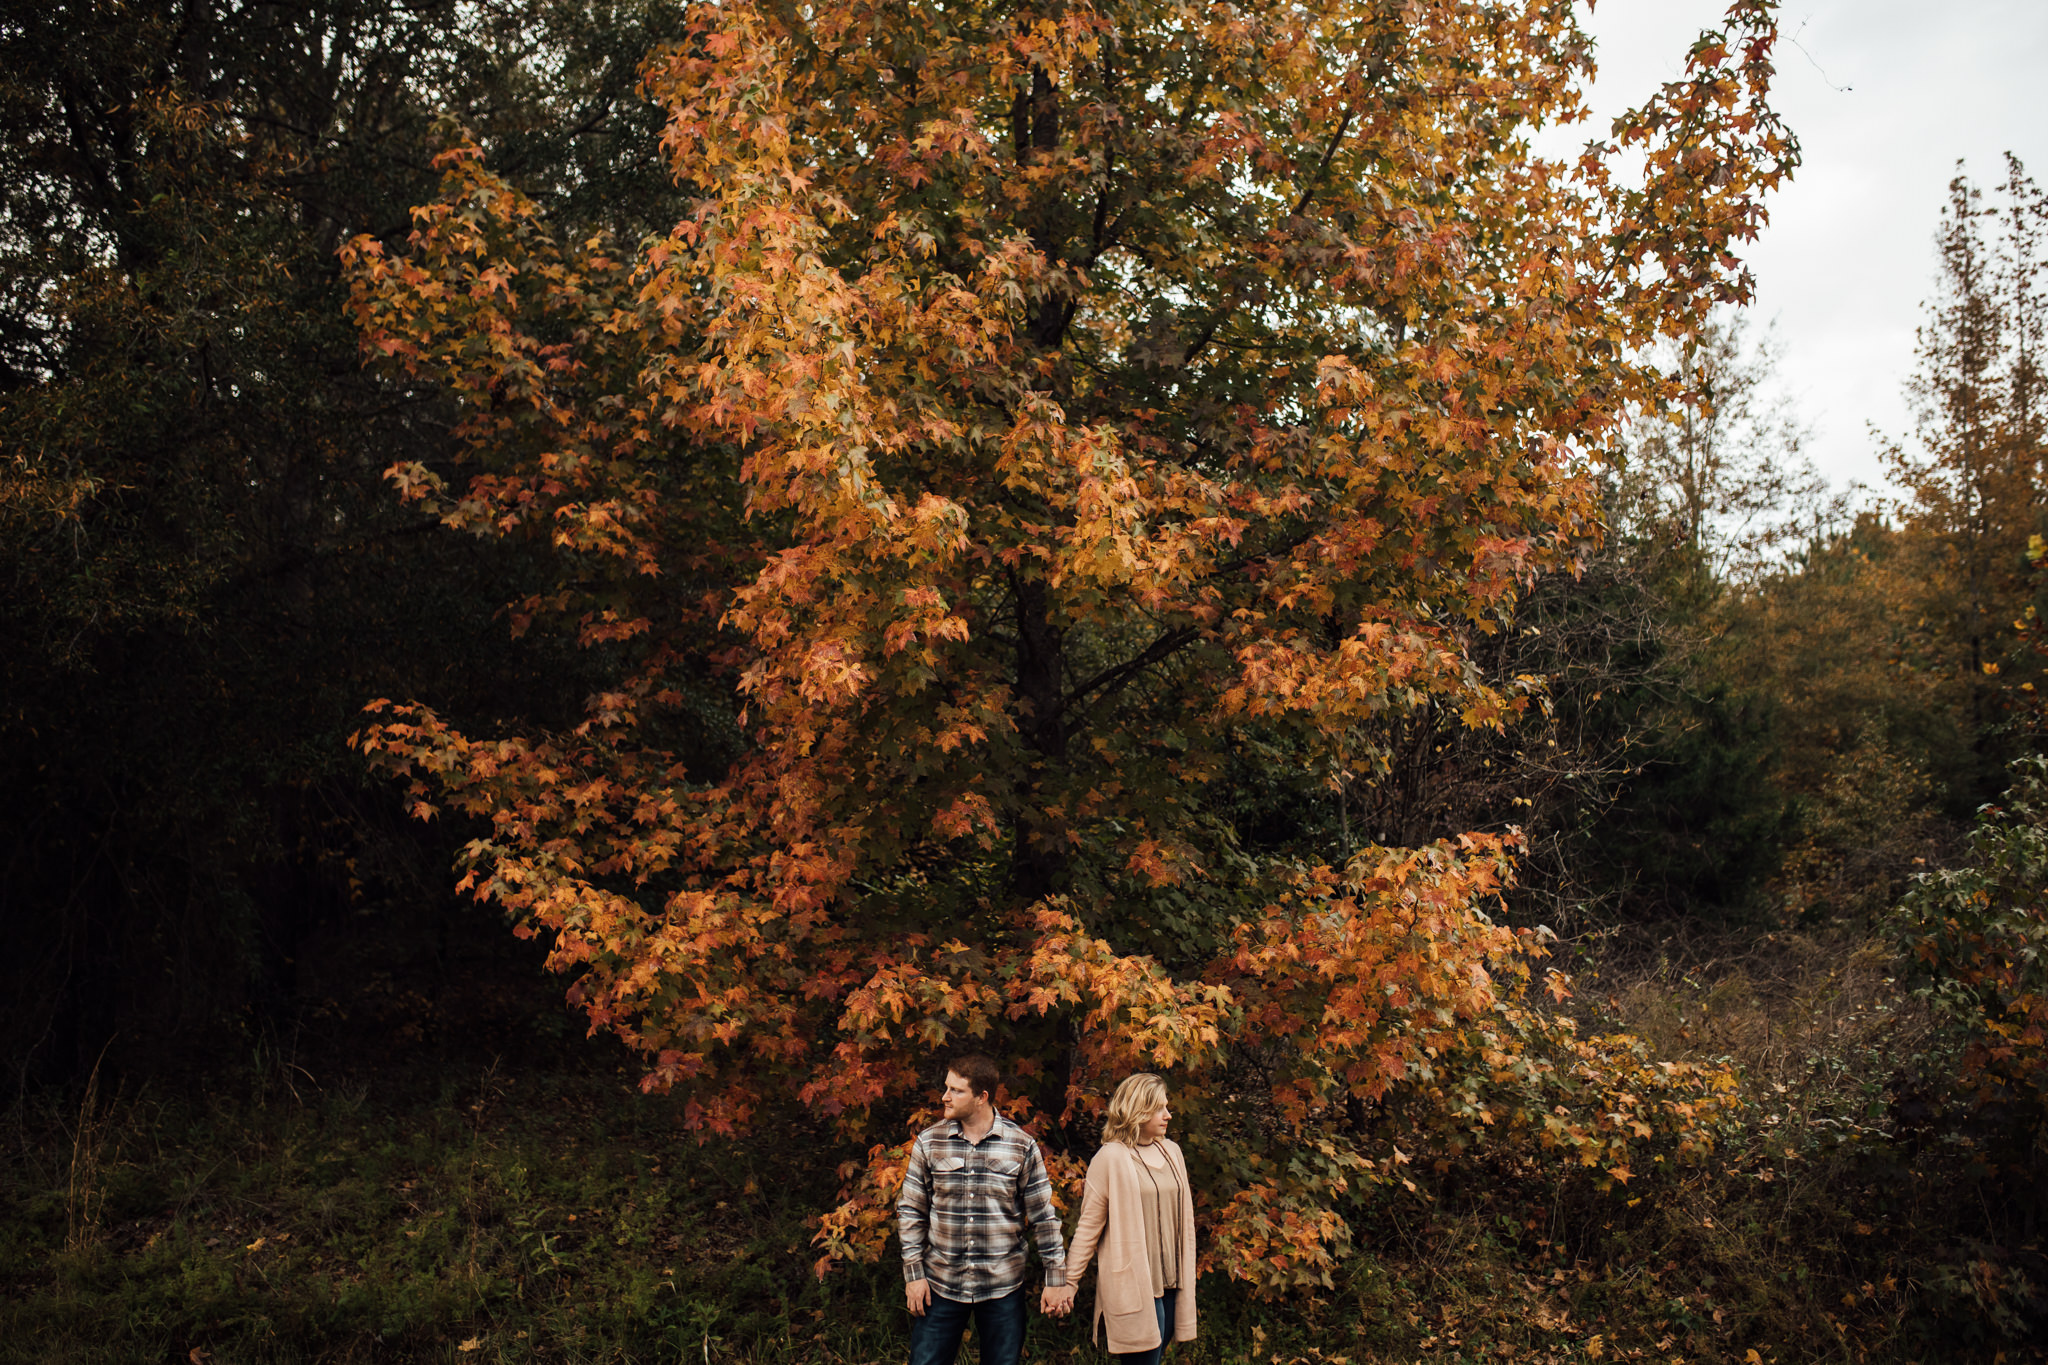 cassie-cook-photography-memphis-wedding-photographer-fall-engagement-picture-leaves-colorful-madison-carter-7.jpg